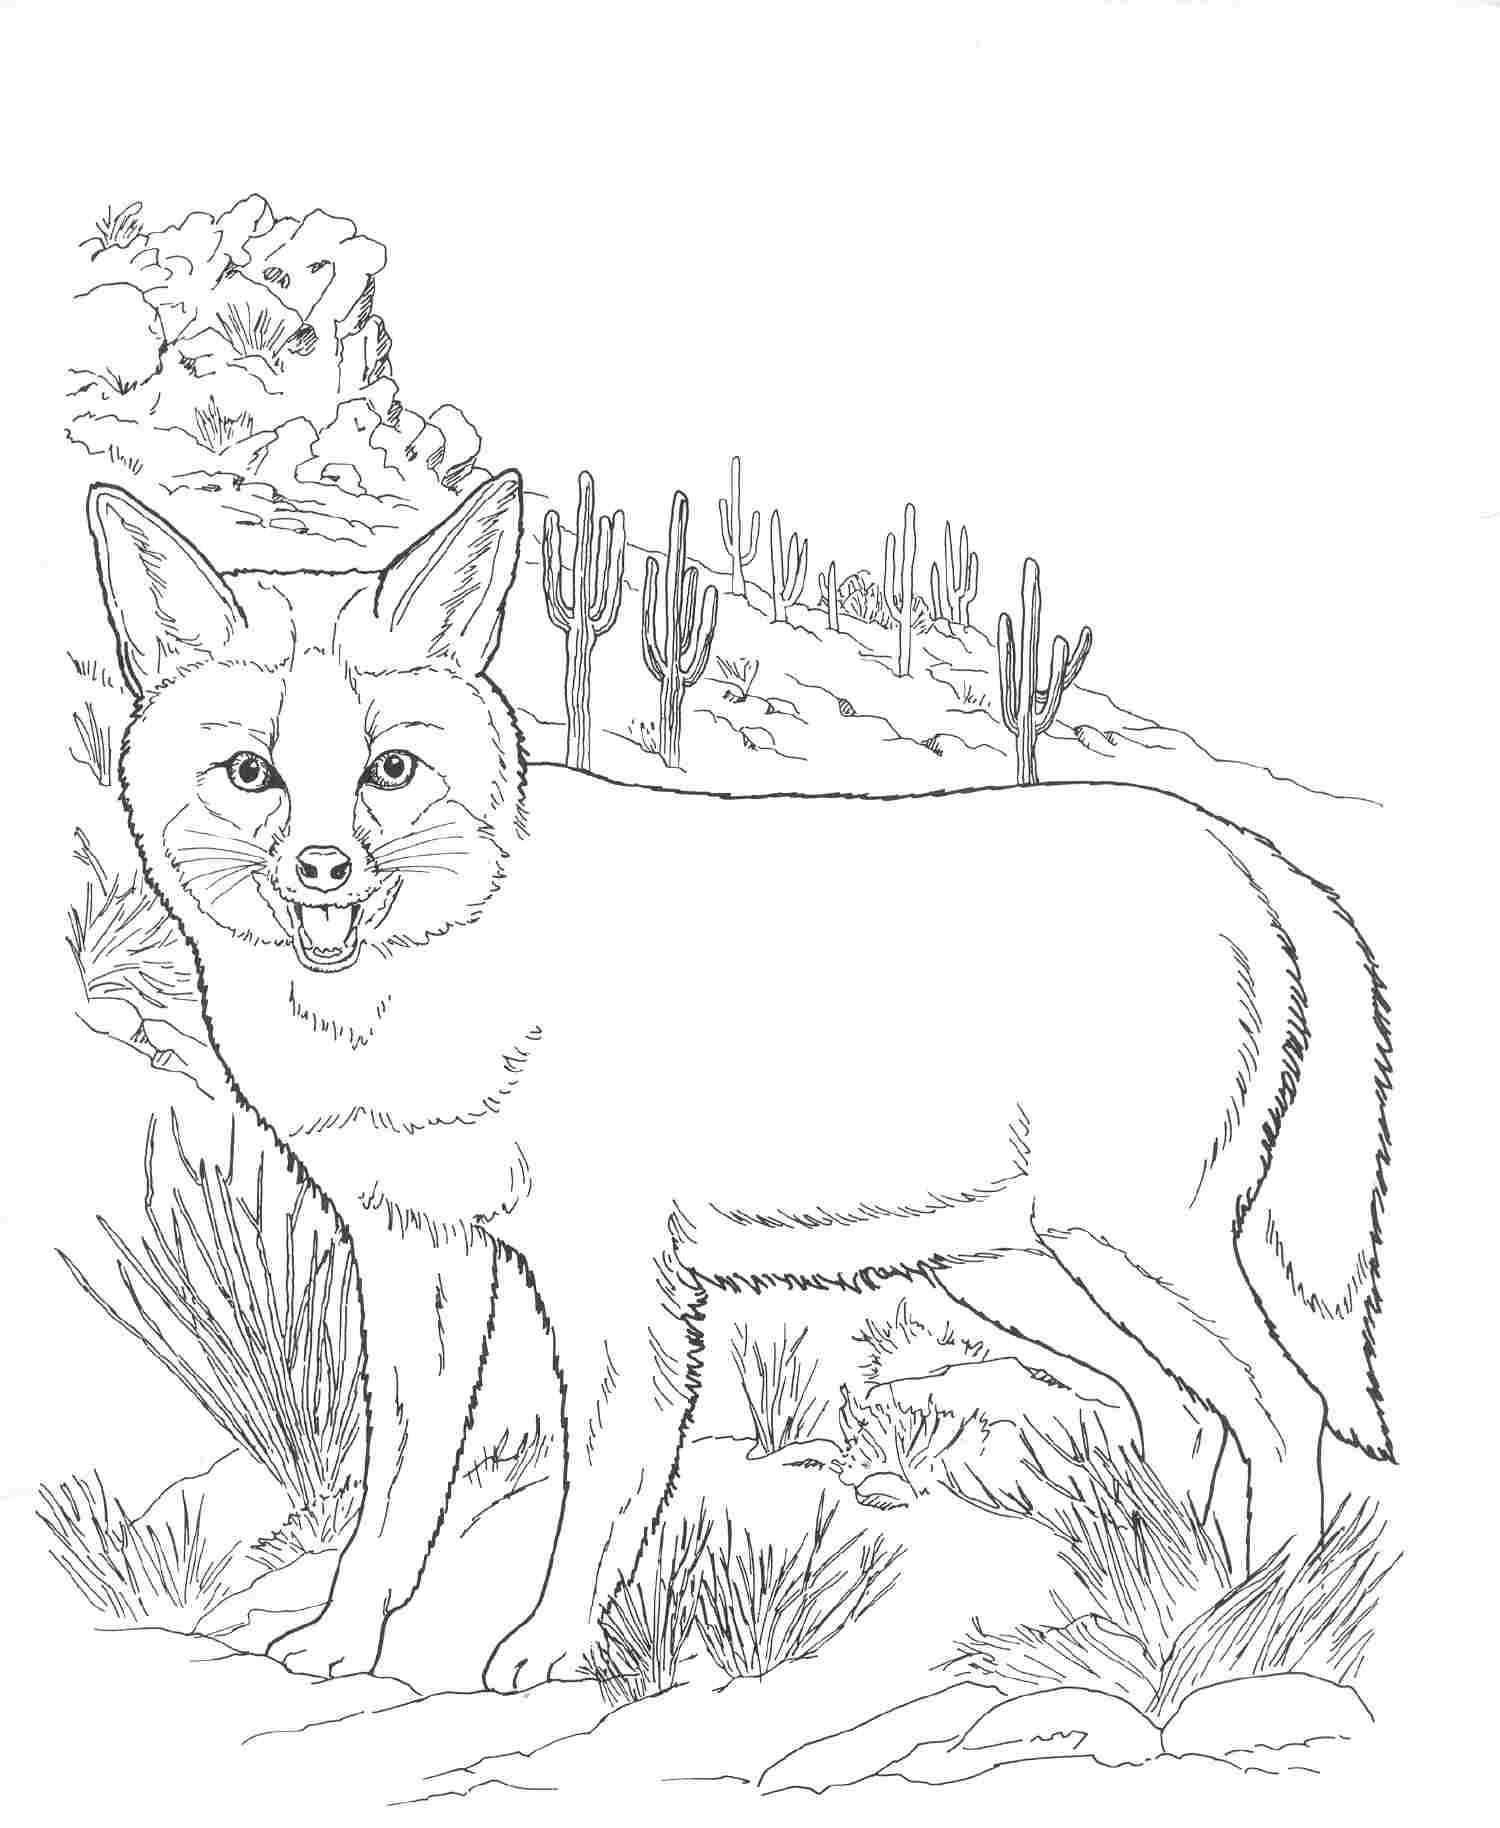 Free Fox Coloring Pictures, Download Free Clip Art, Free Clip Art on  Clipart Library | 1828x1500